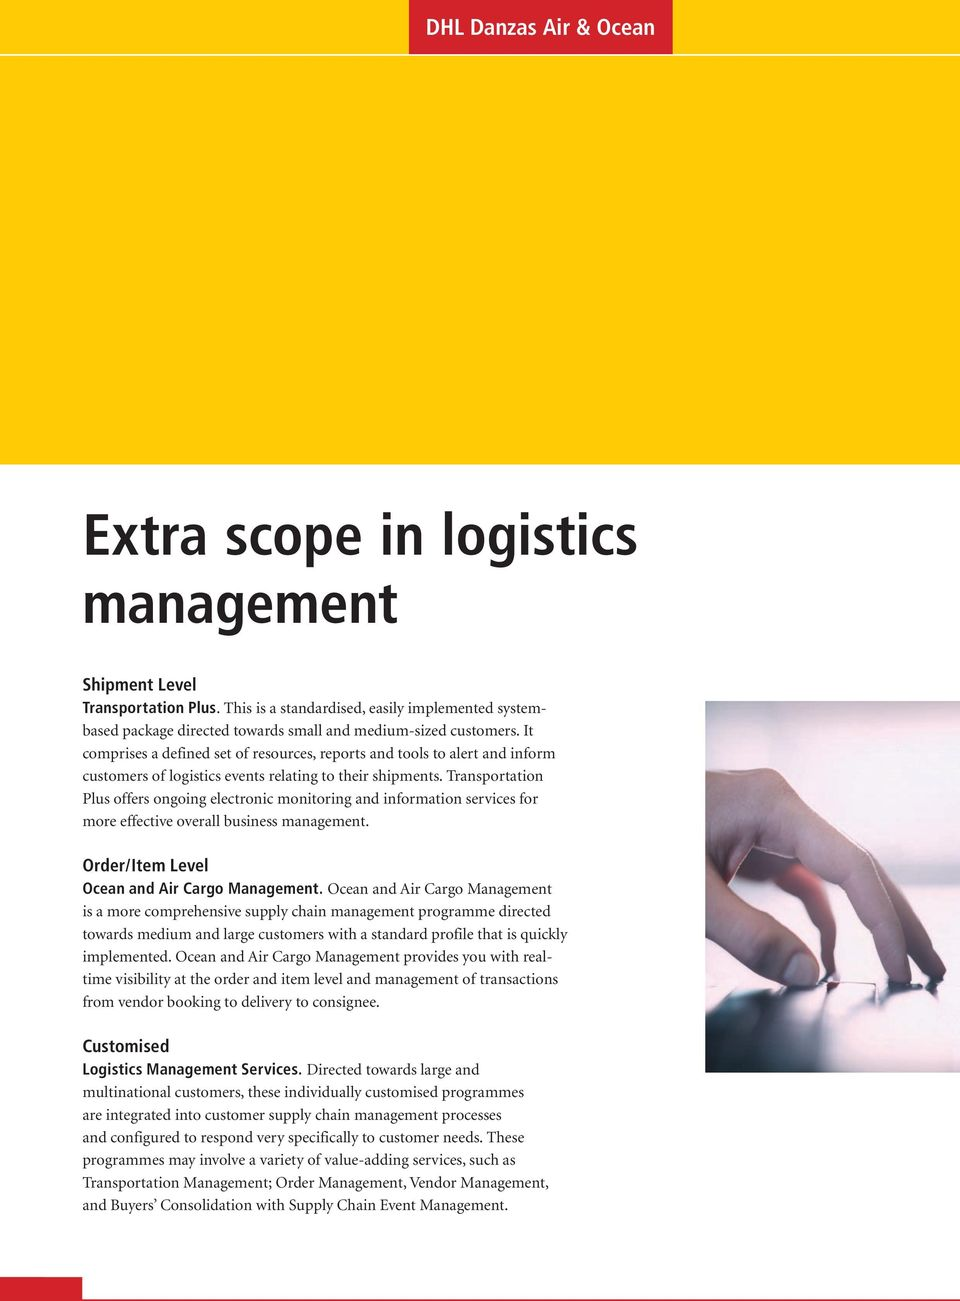 It comprises a defined set of resources, reports and tools to alert and inform customers of logistics events relating to their shipments.